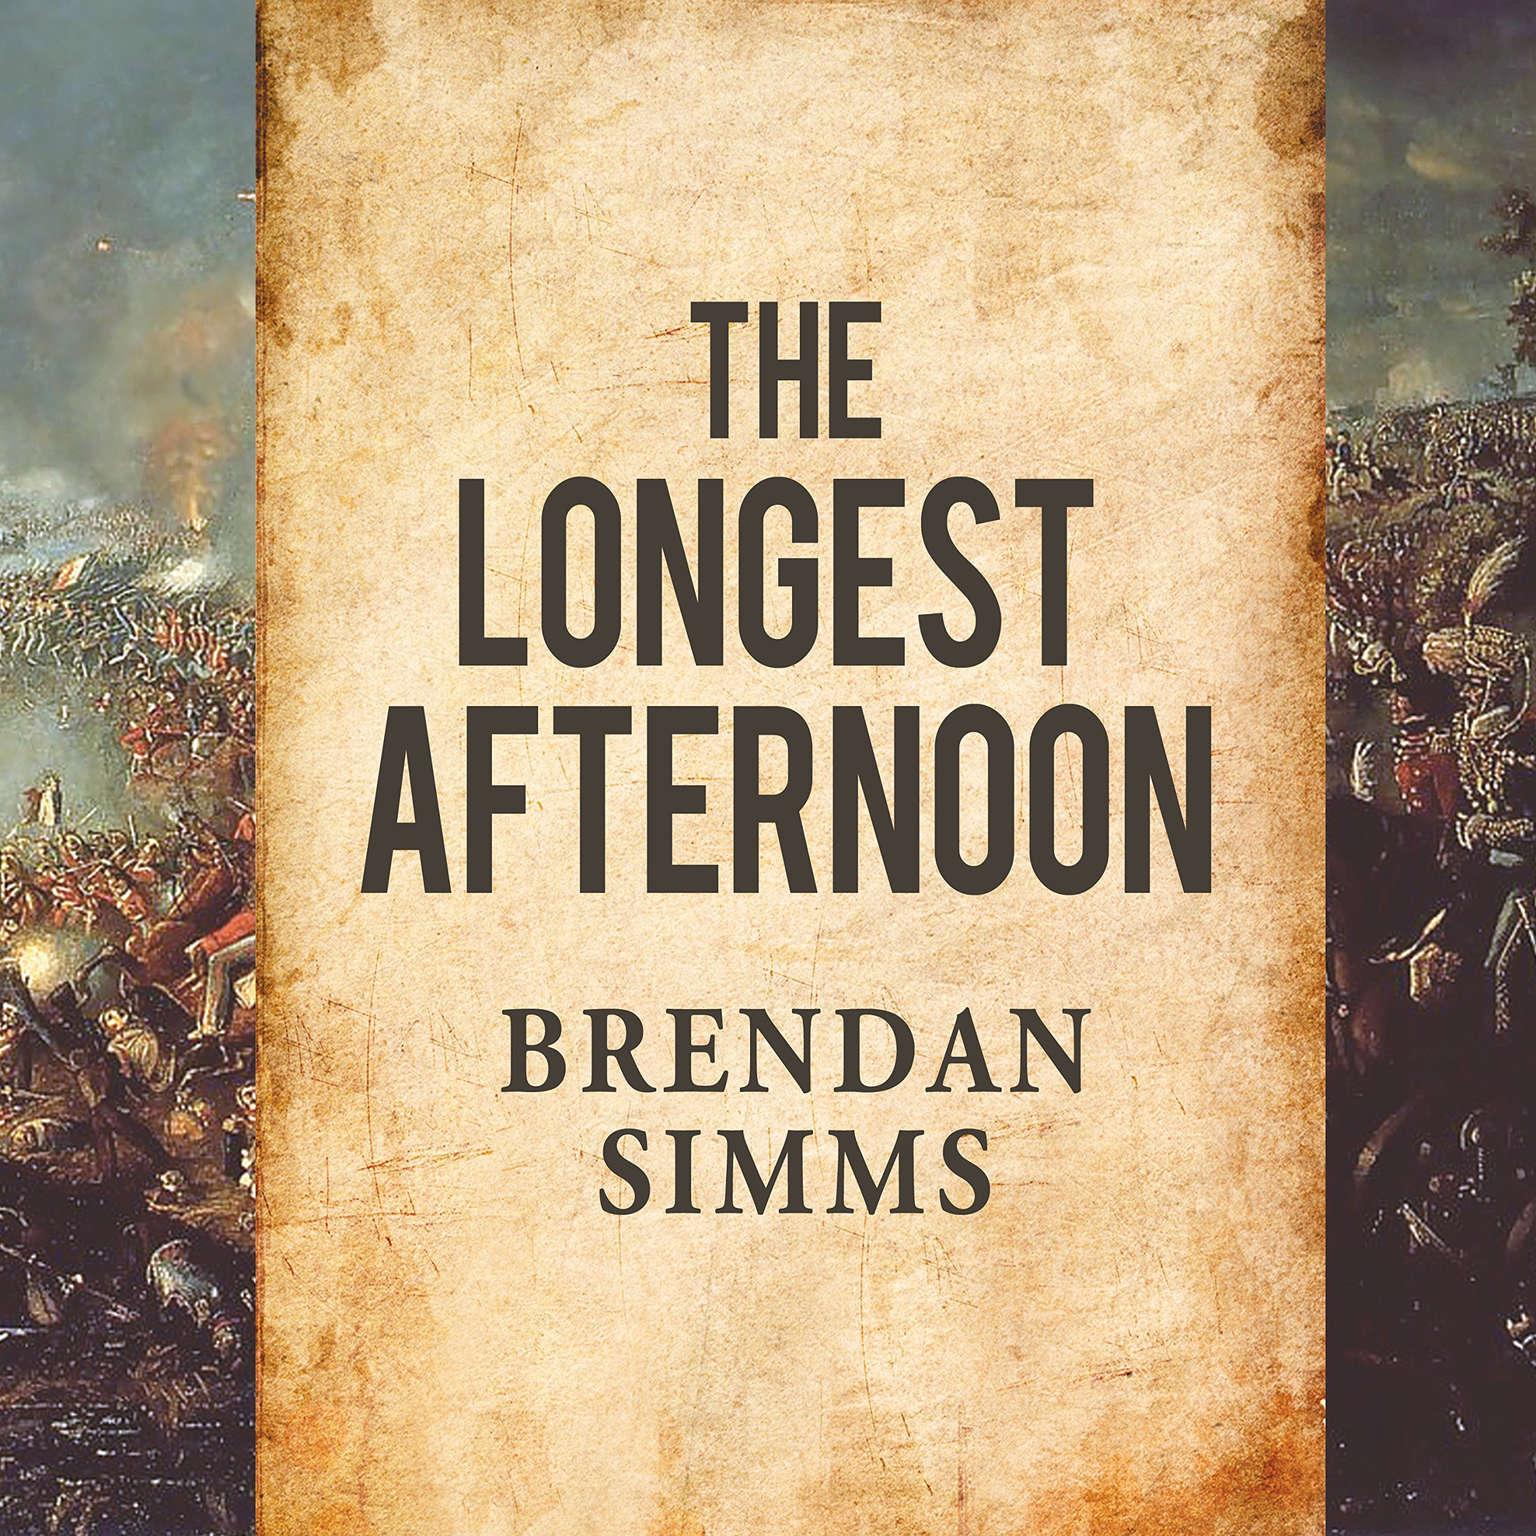 Printable The Longest Afternoon: The 400 Men Who Decided the Battle of Waterloo Audiobook Cover Art